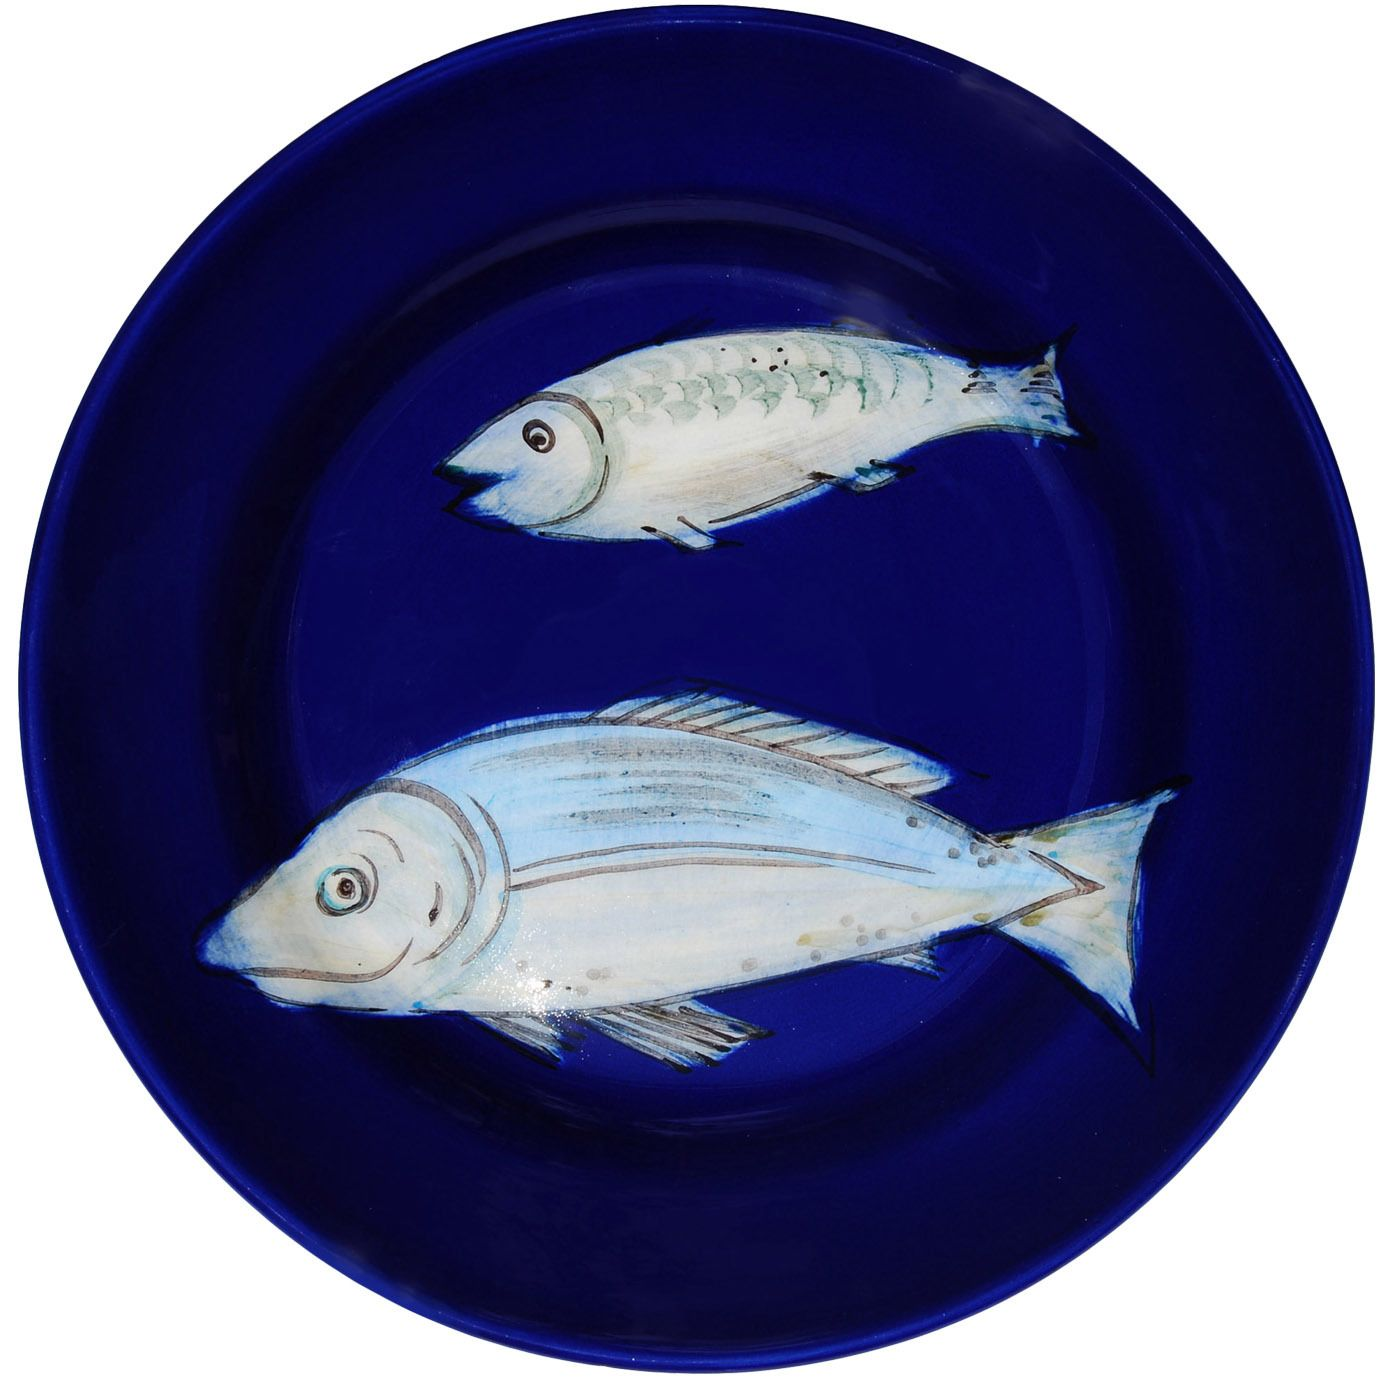 Set of 6 Blue Fish Dessert Plates - Shop timeless tableware handmade in Italy: ceramic plates, silver cutlery and crystal glasses - Home Décor and Interior Design ideas from Italy's finest artisans - Artemest